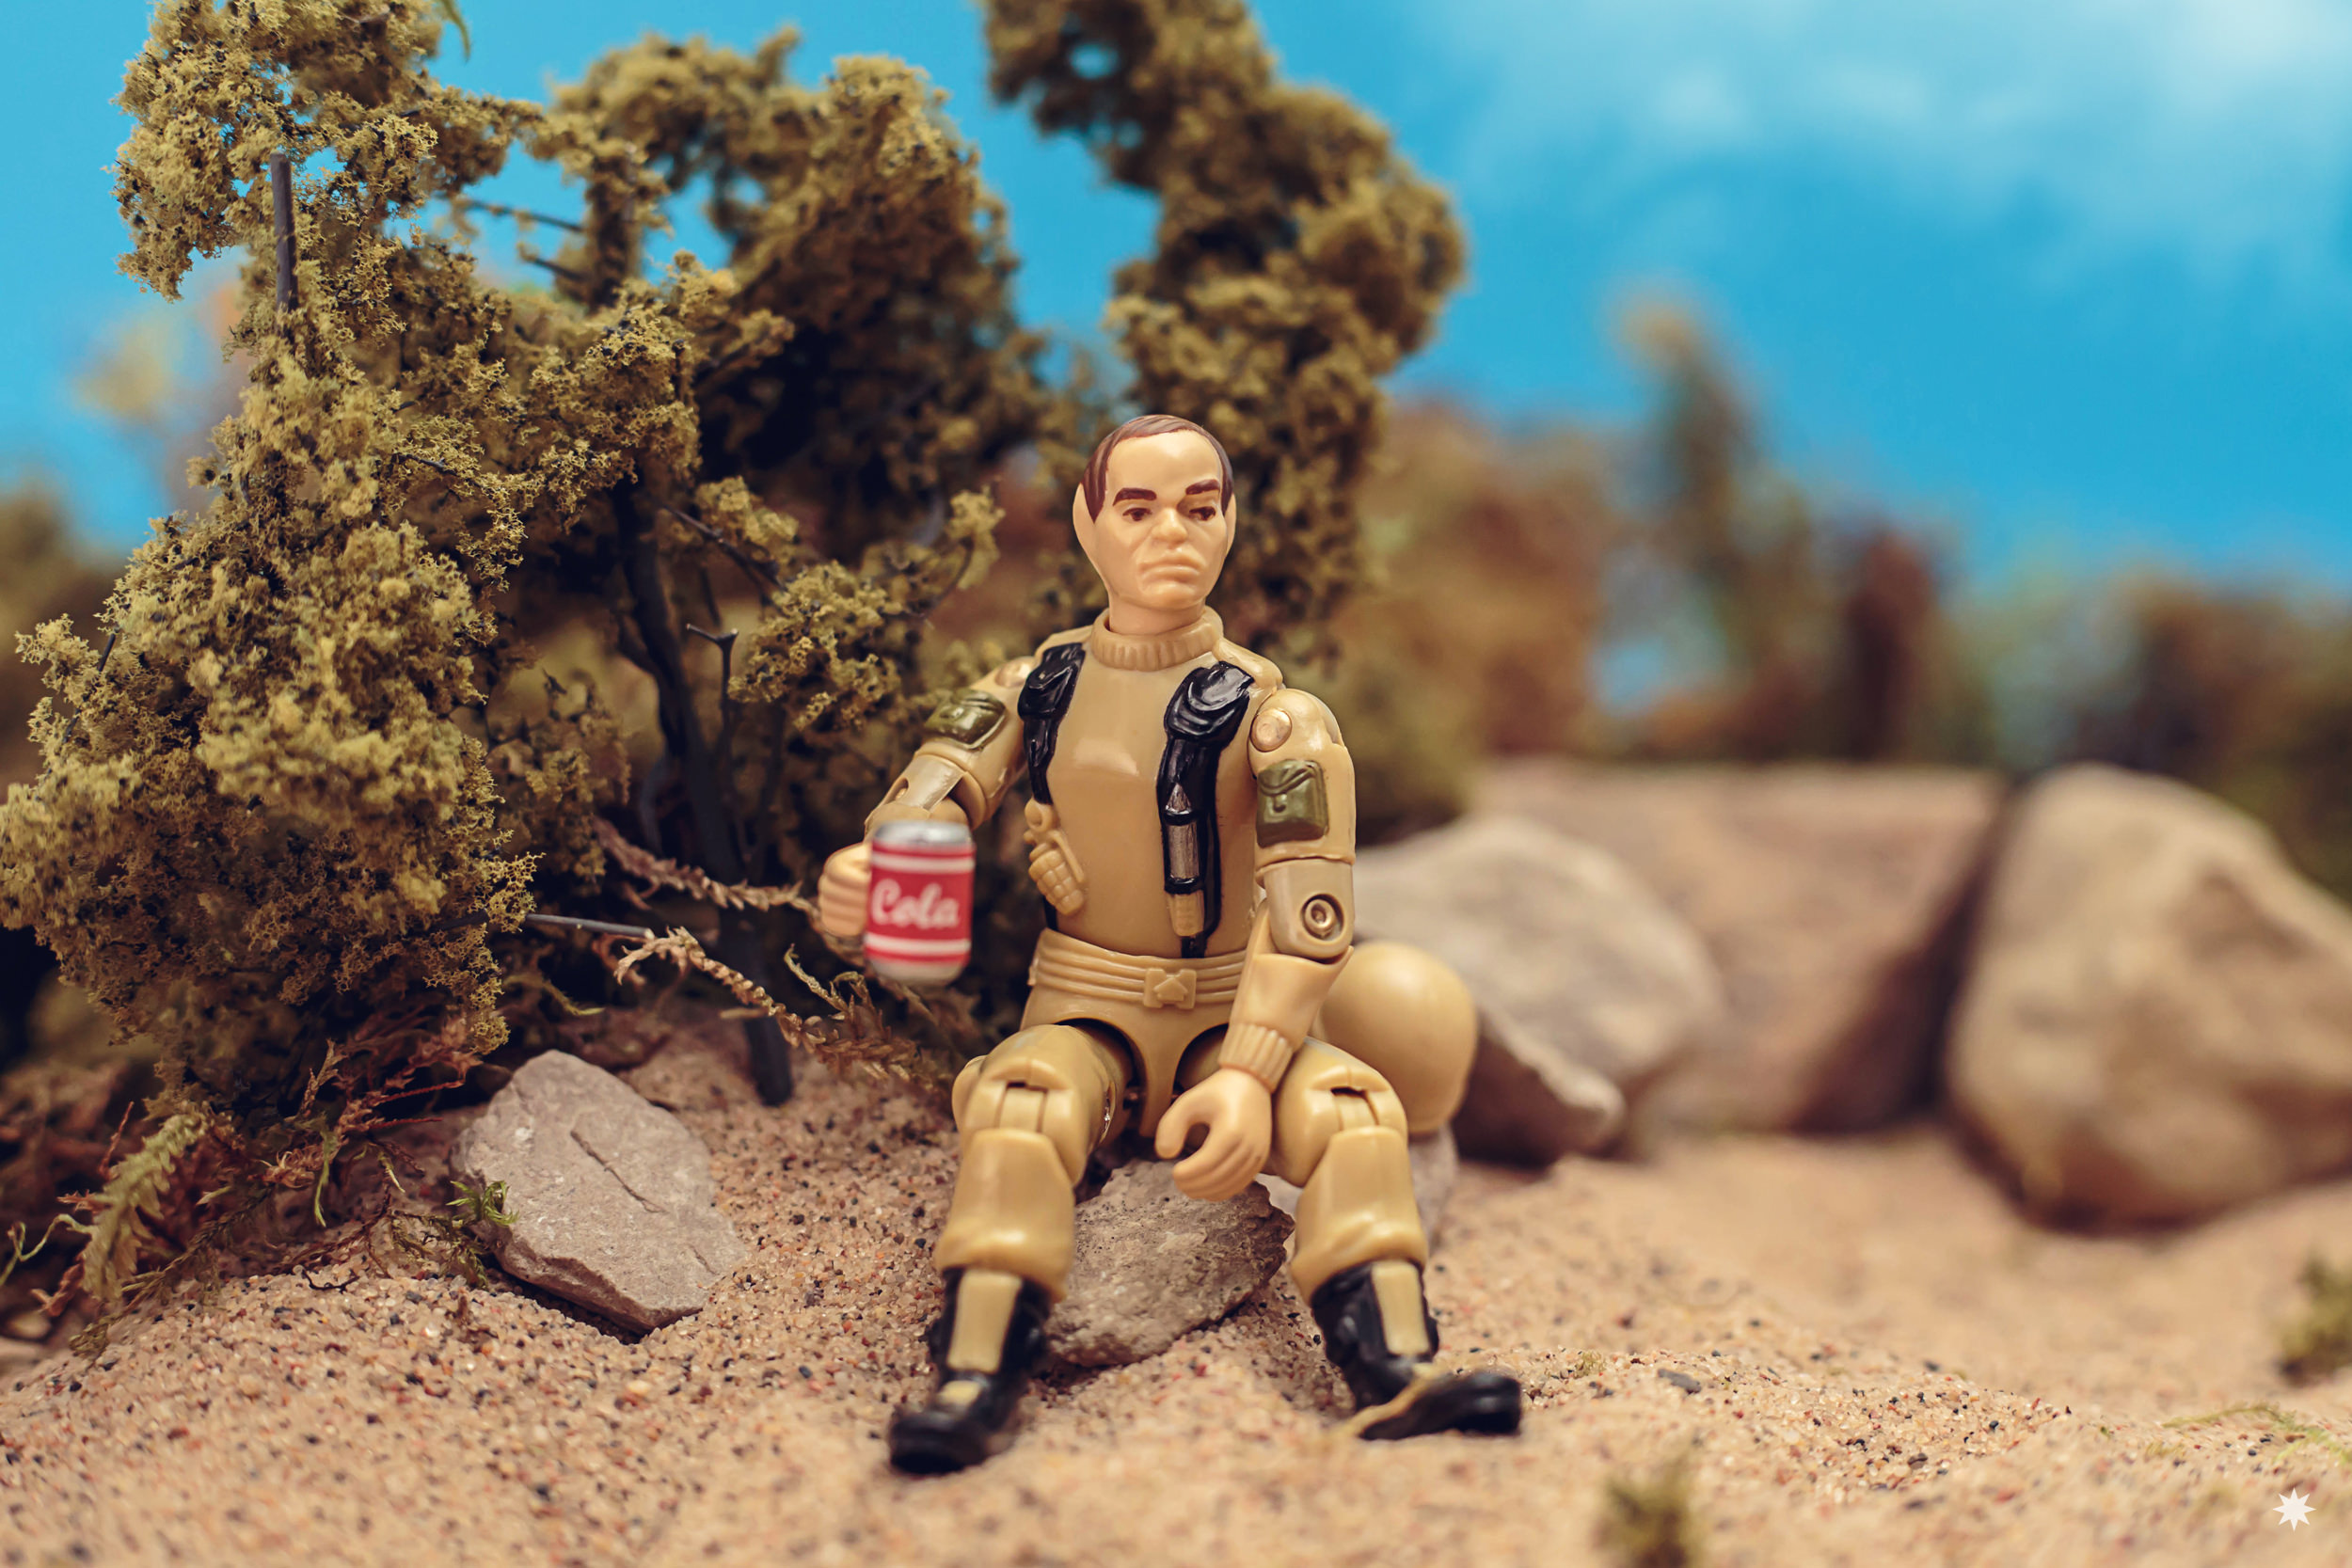 go-joe-grunt-cola-diorama-pizzabox-toy-photo-photography-action-figure.jpg